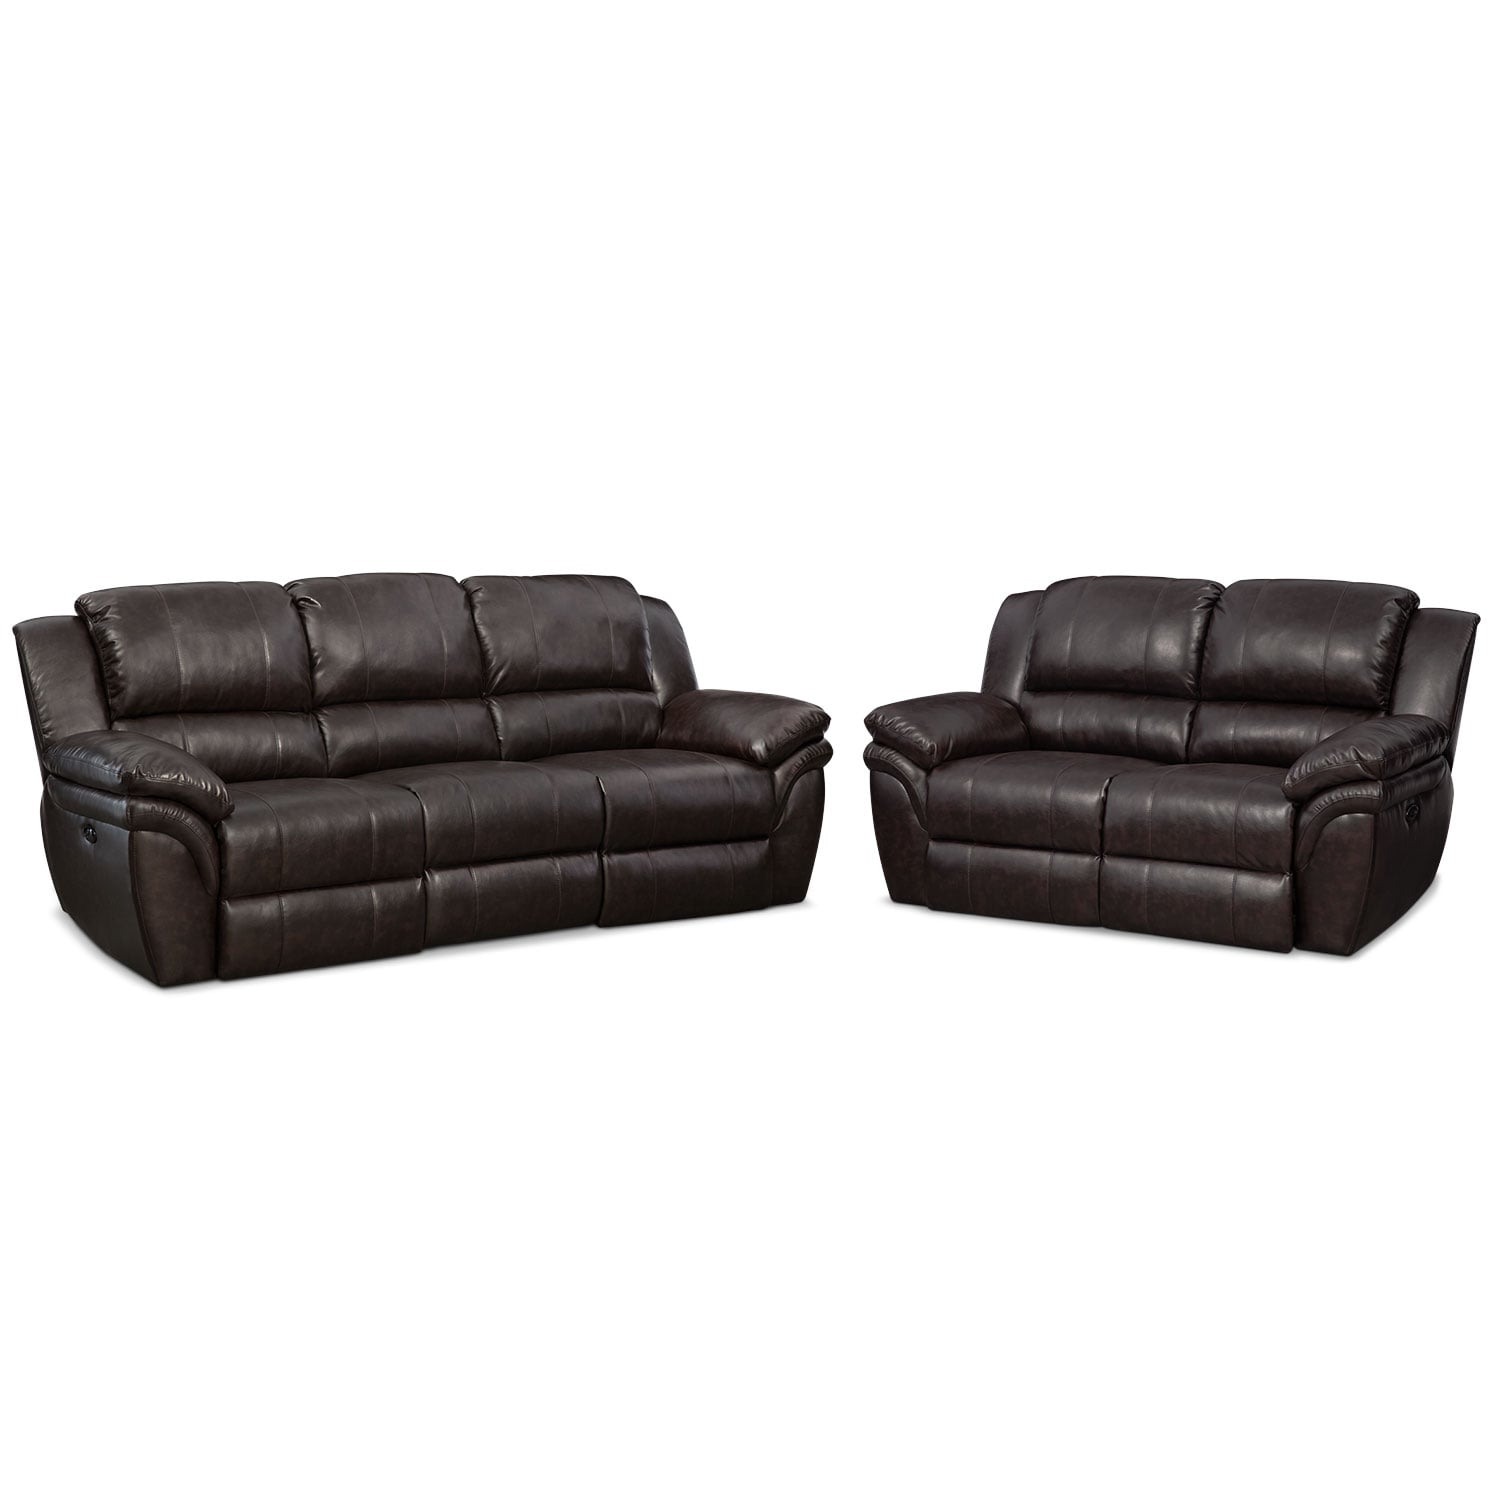 Living Room Furniture - Omni Brown 2 Pc. Power Reclining Living Room